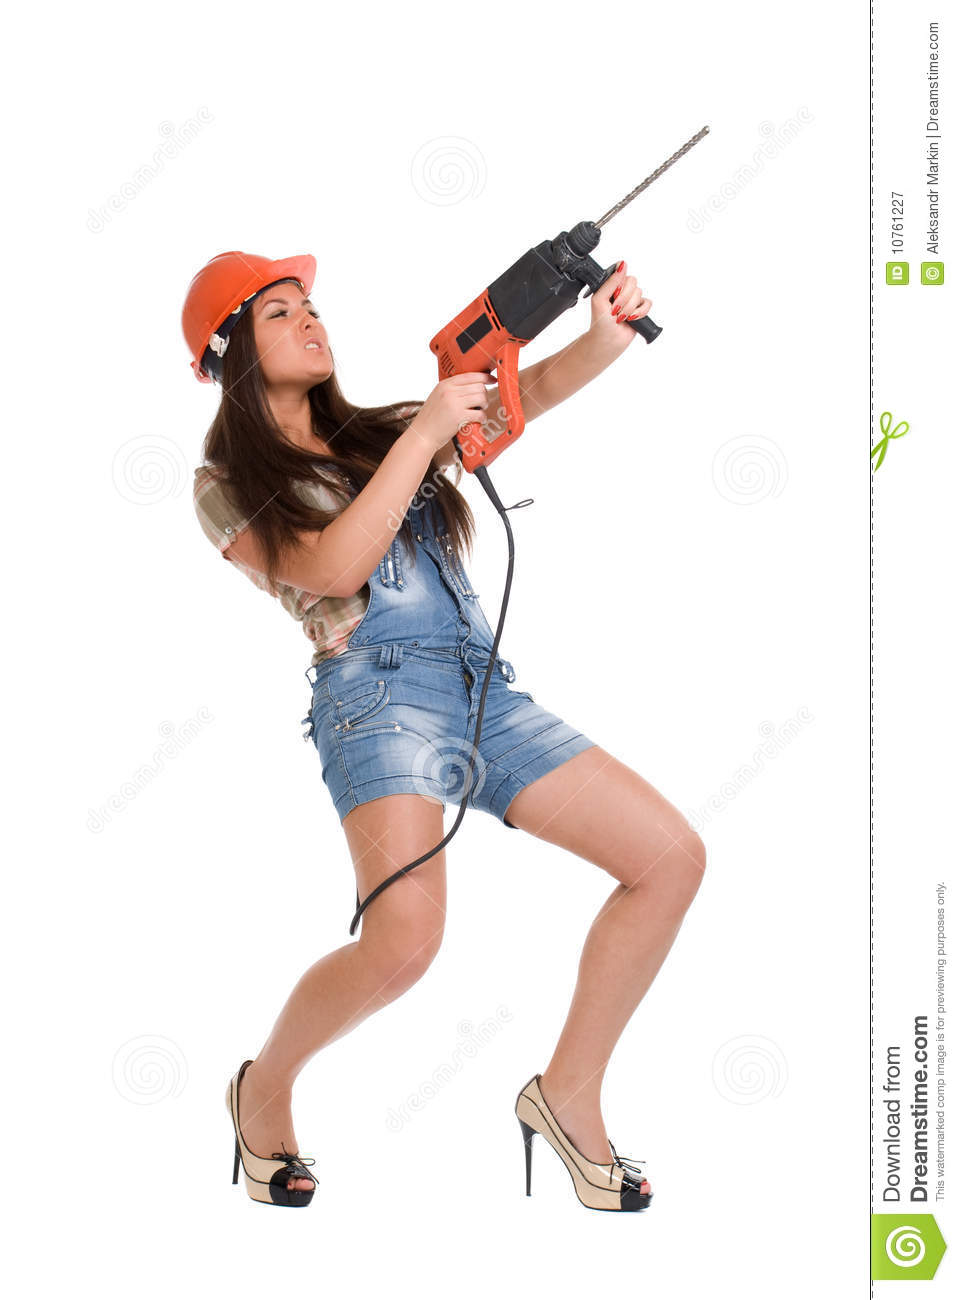 Woman Holding Hammer Drill 2 Royalty Free Stock